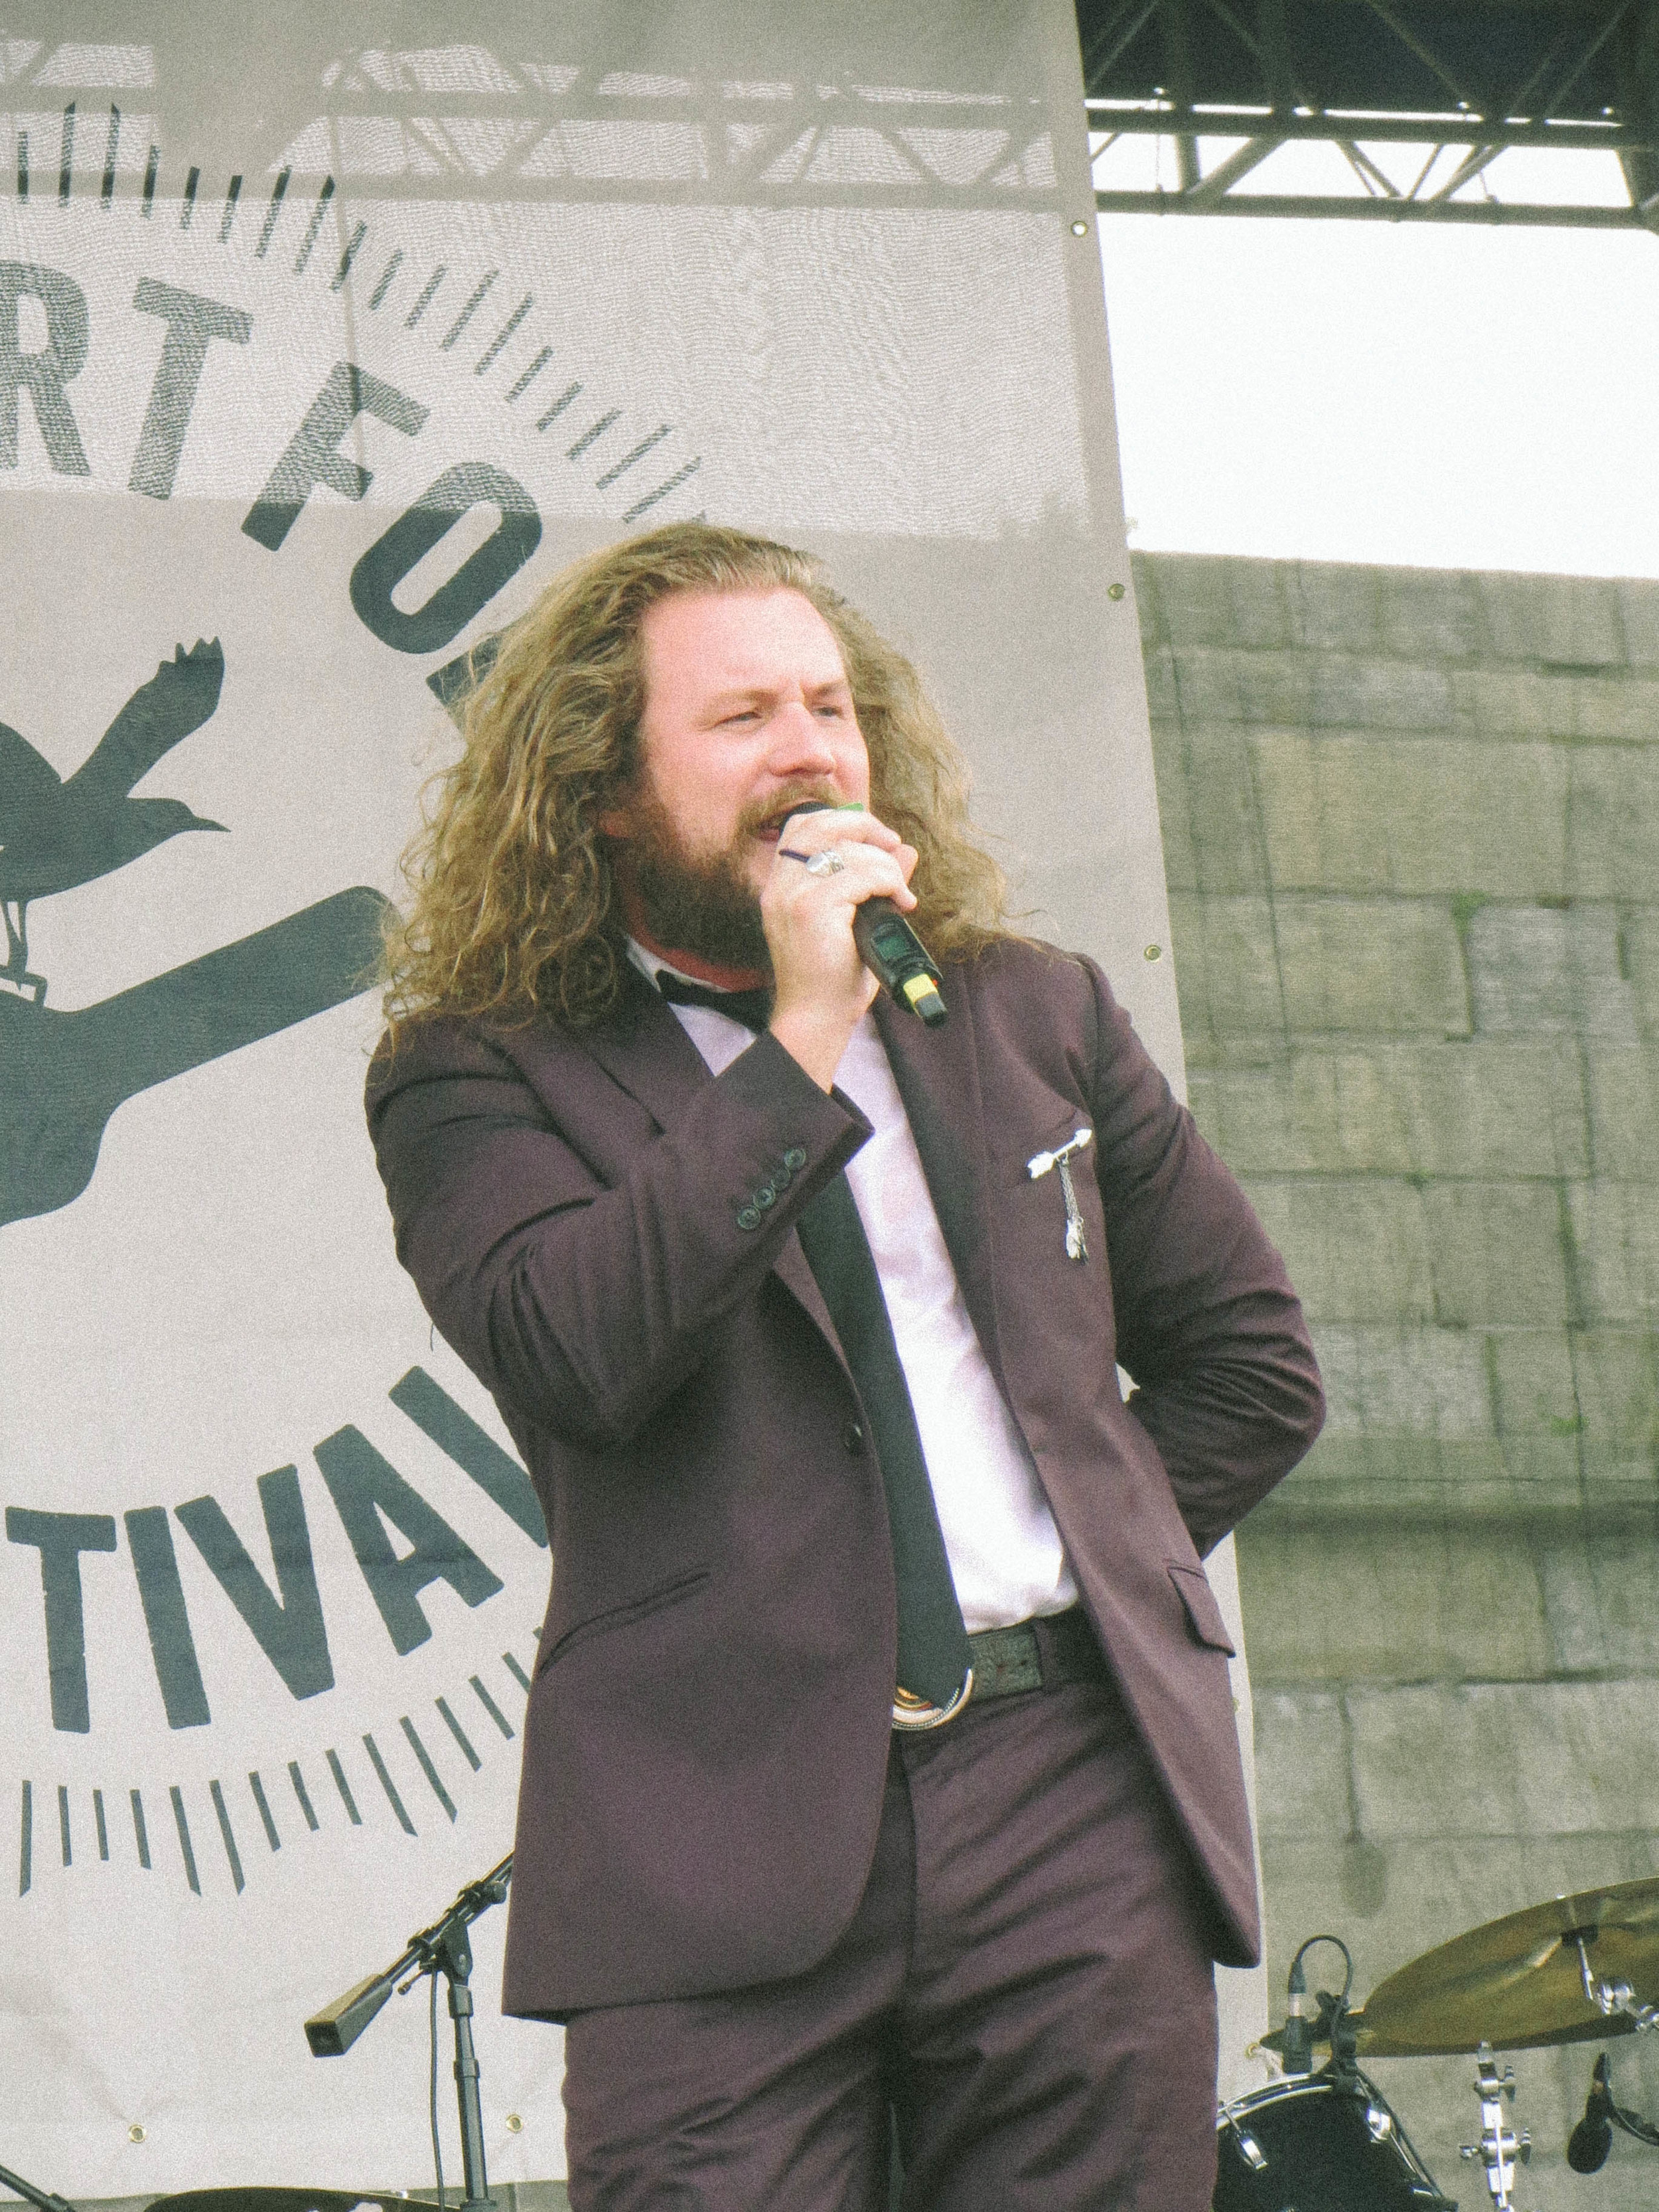 Jim James PHOTOCRED: Lizzy